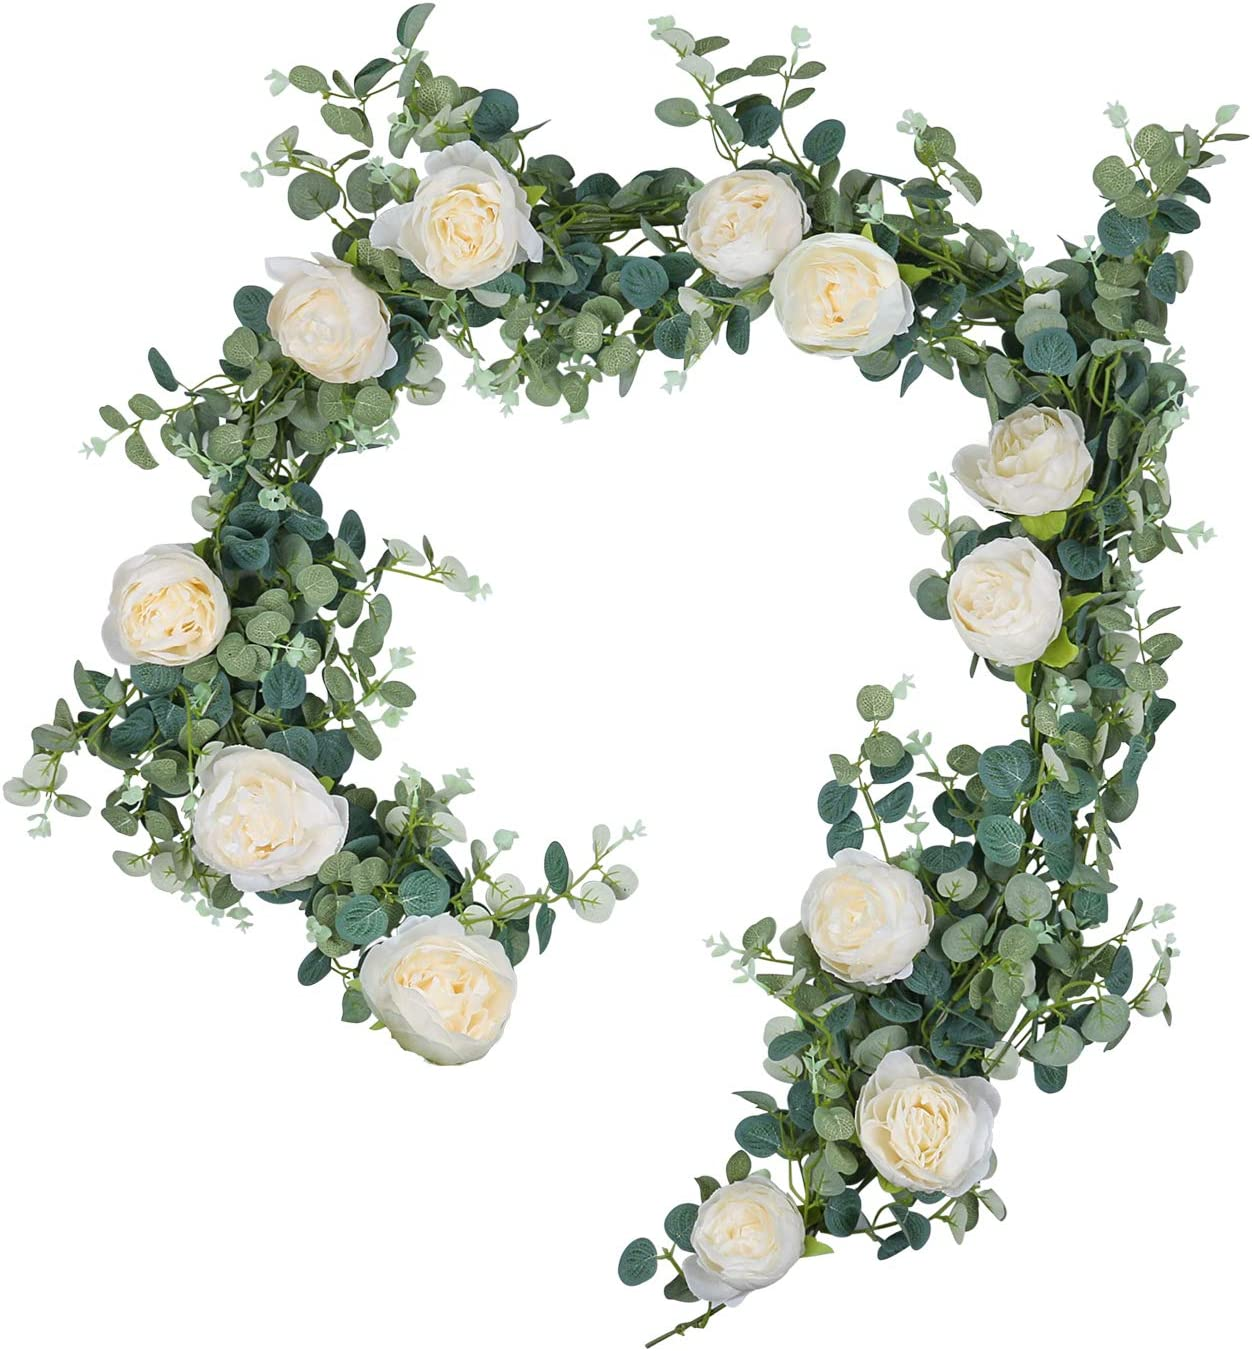 U'Artlines 6Ft Artificial Eucalyptus Leaves Garland Faux Silk Greenery Vine Hanging Plants Swag for Home Wedding Backdrop Table Decor (Eucalyptus Garland with Light Champagne Peonies)